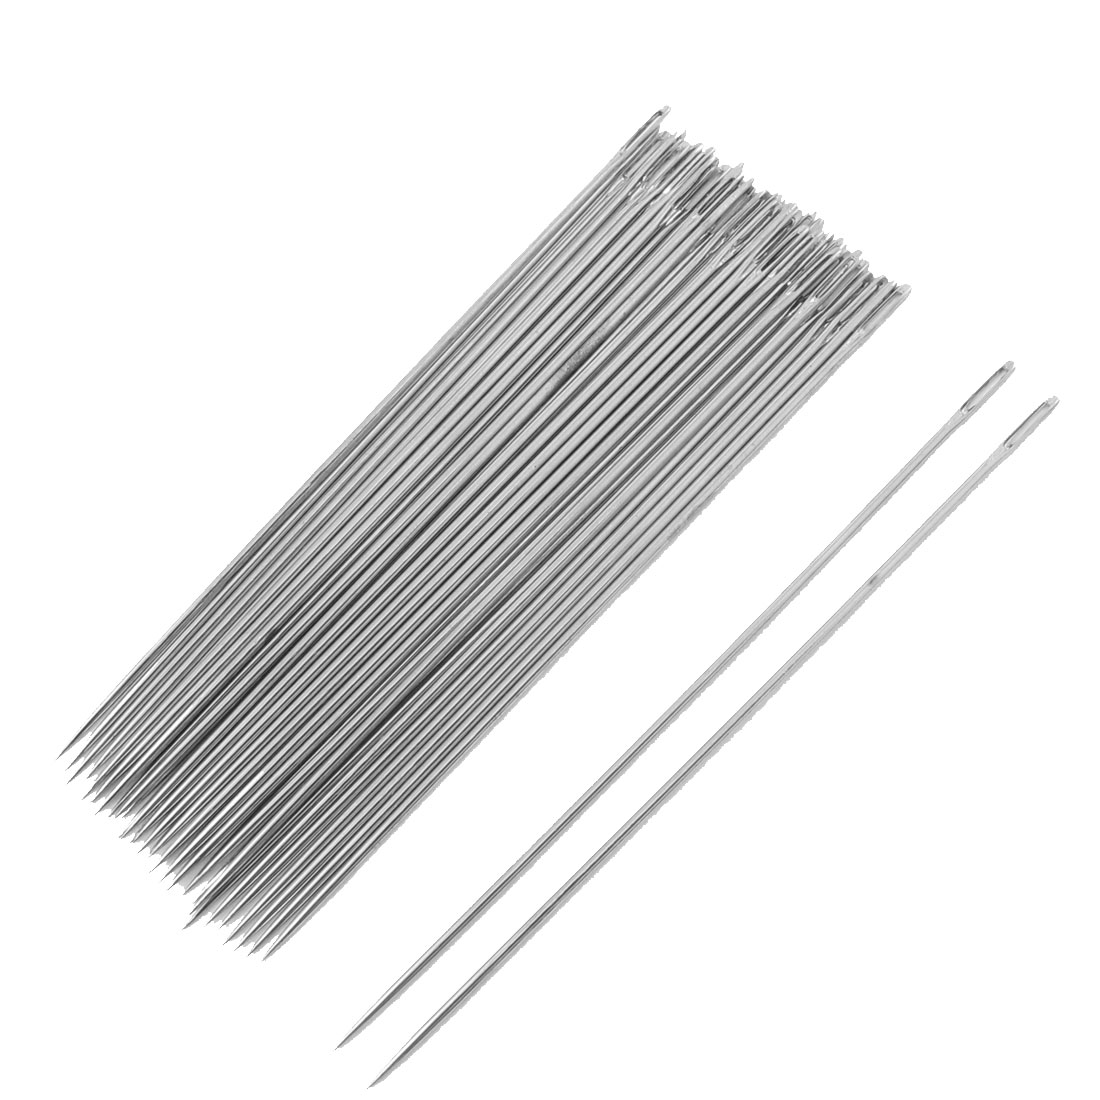 "40 Pcs Silver Tone Metal Sewing Needles 3.5"" Long"